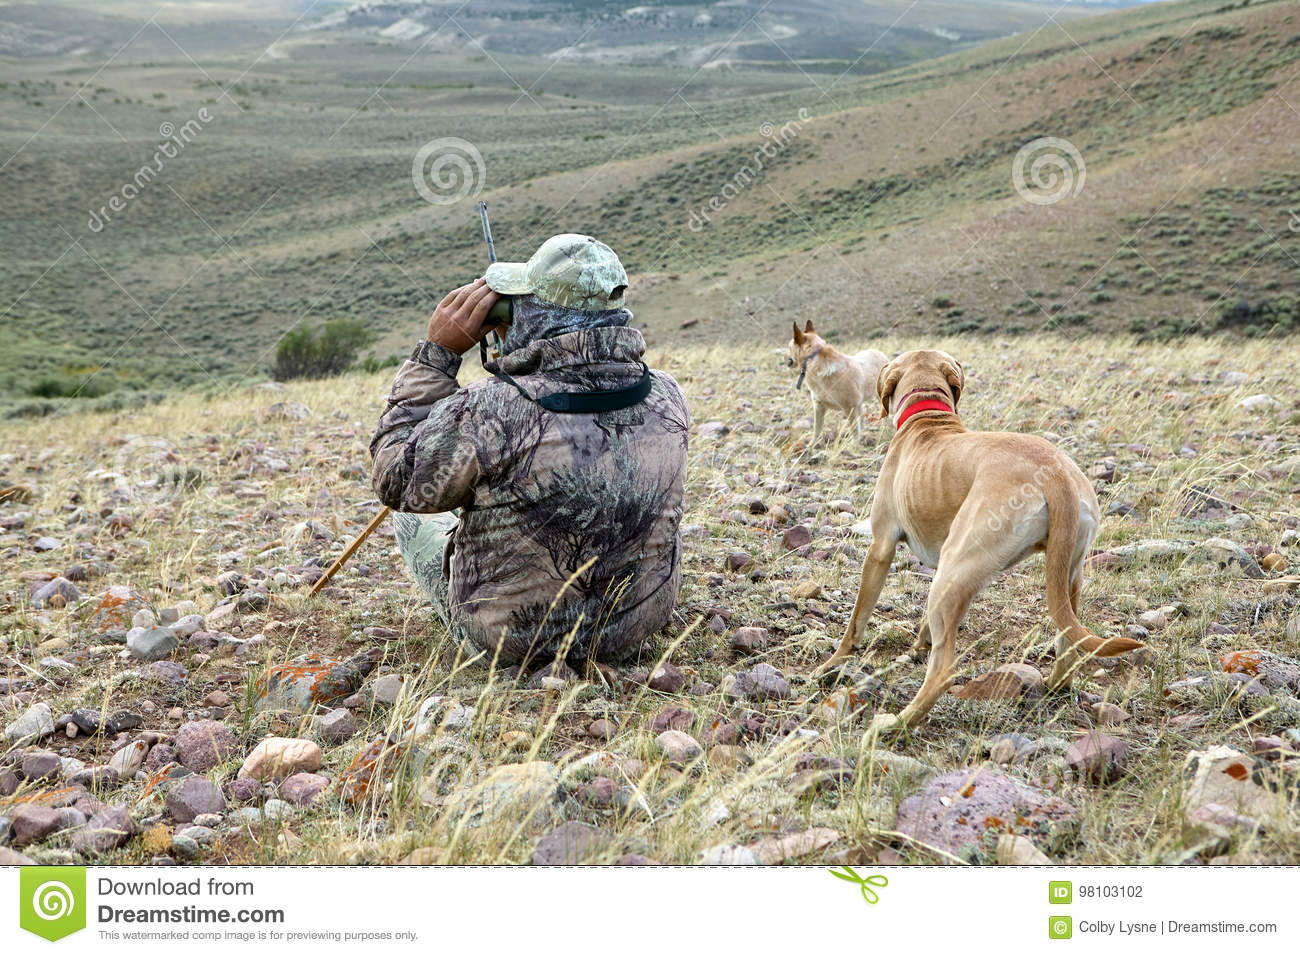 Camouflage hunter and dogs scanning arid landscape